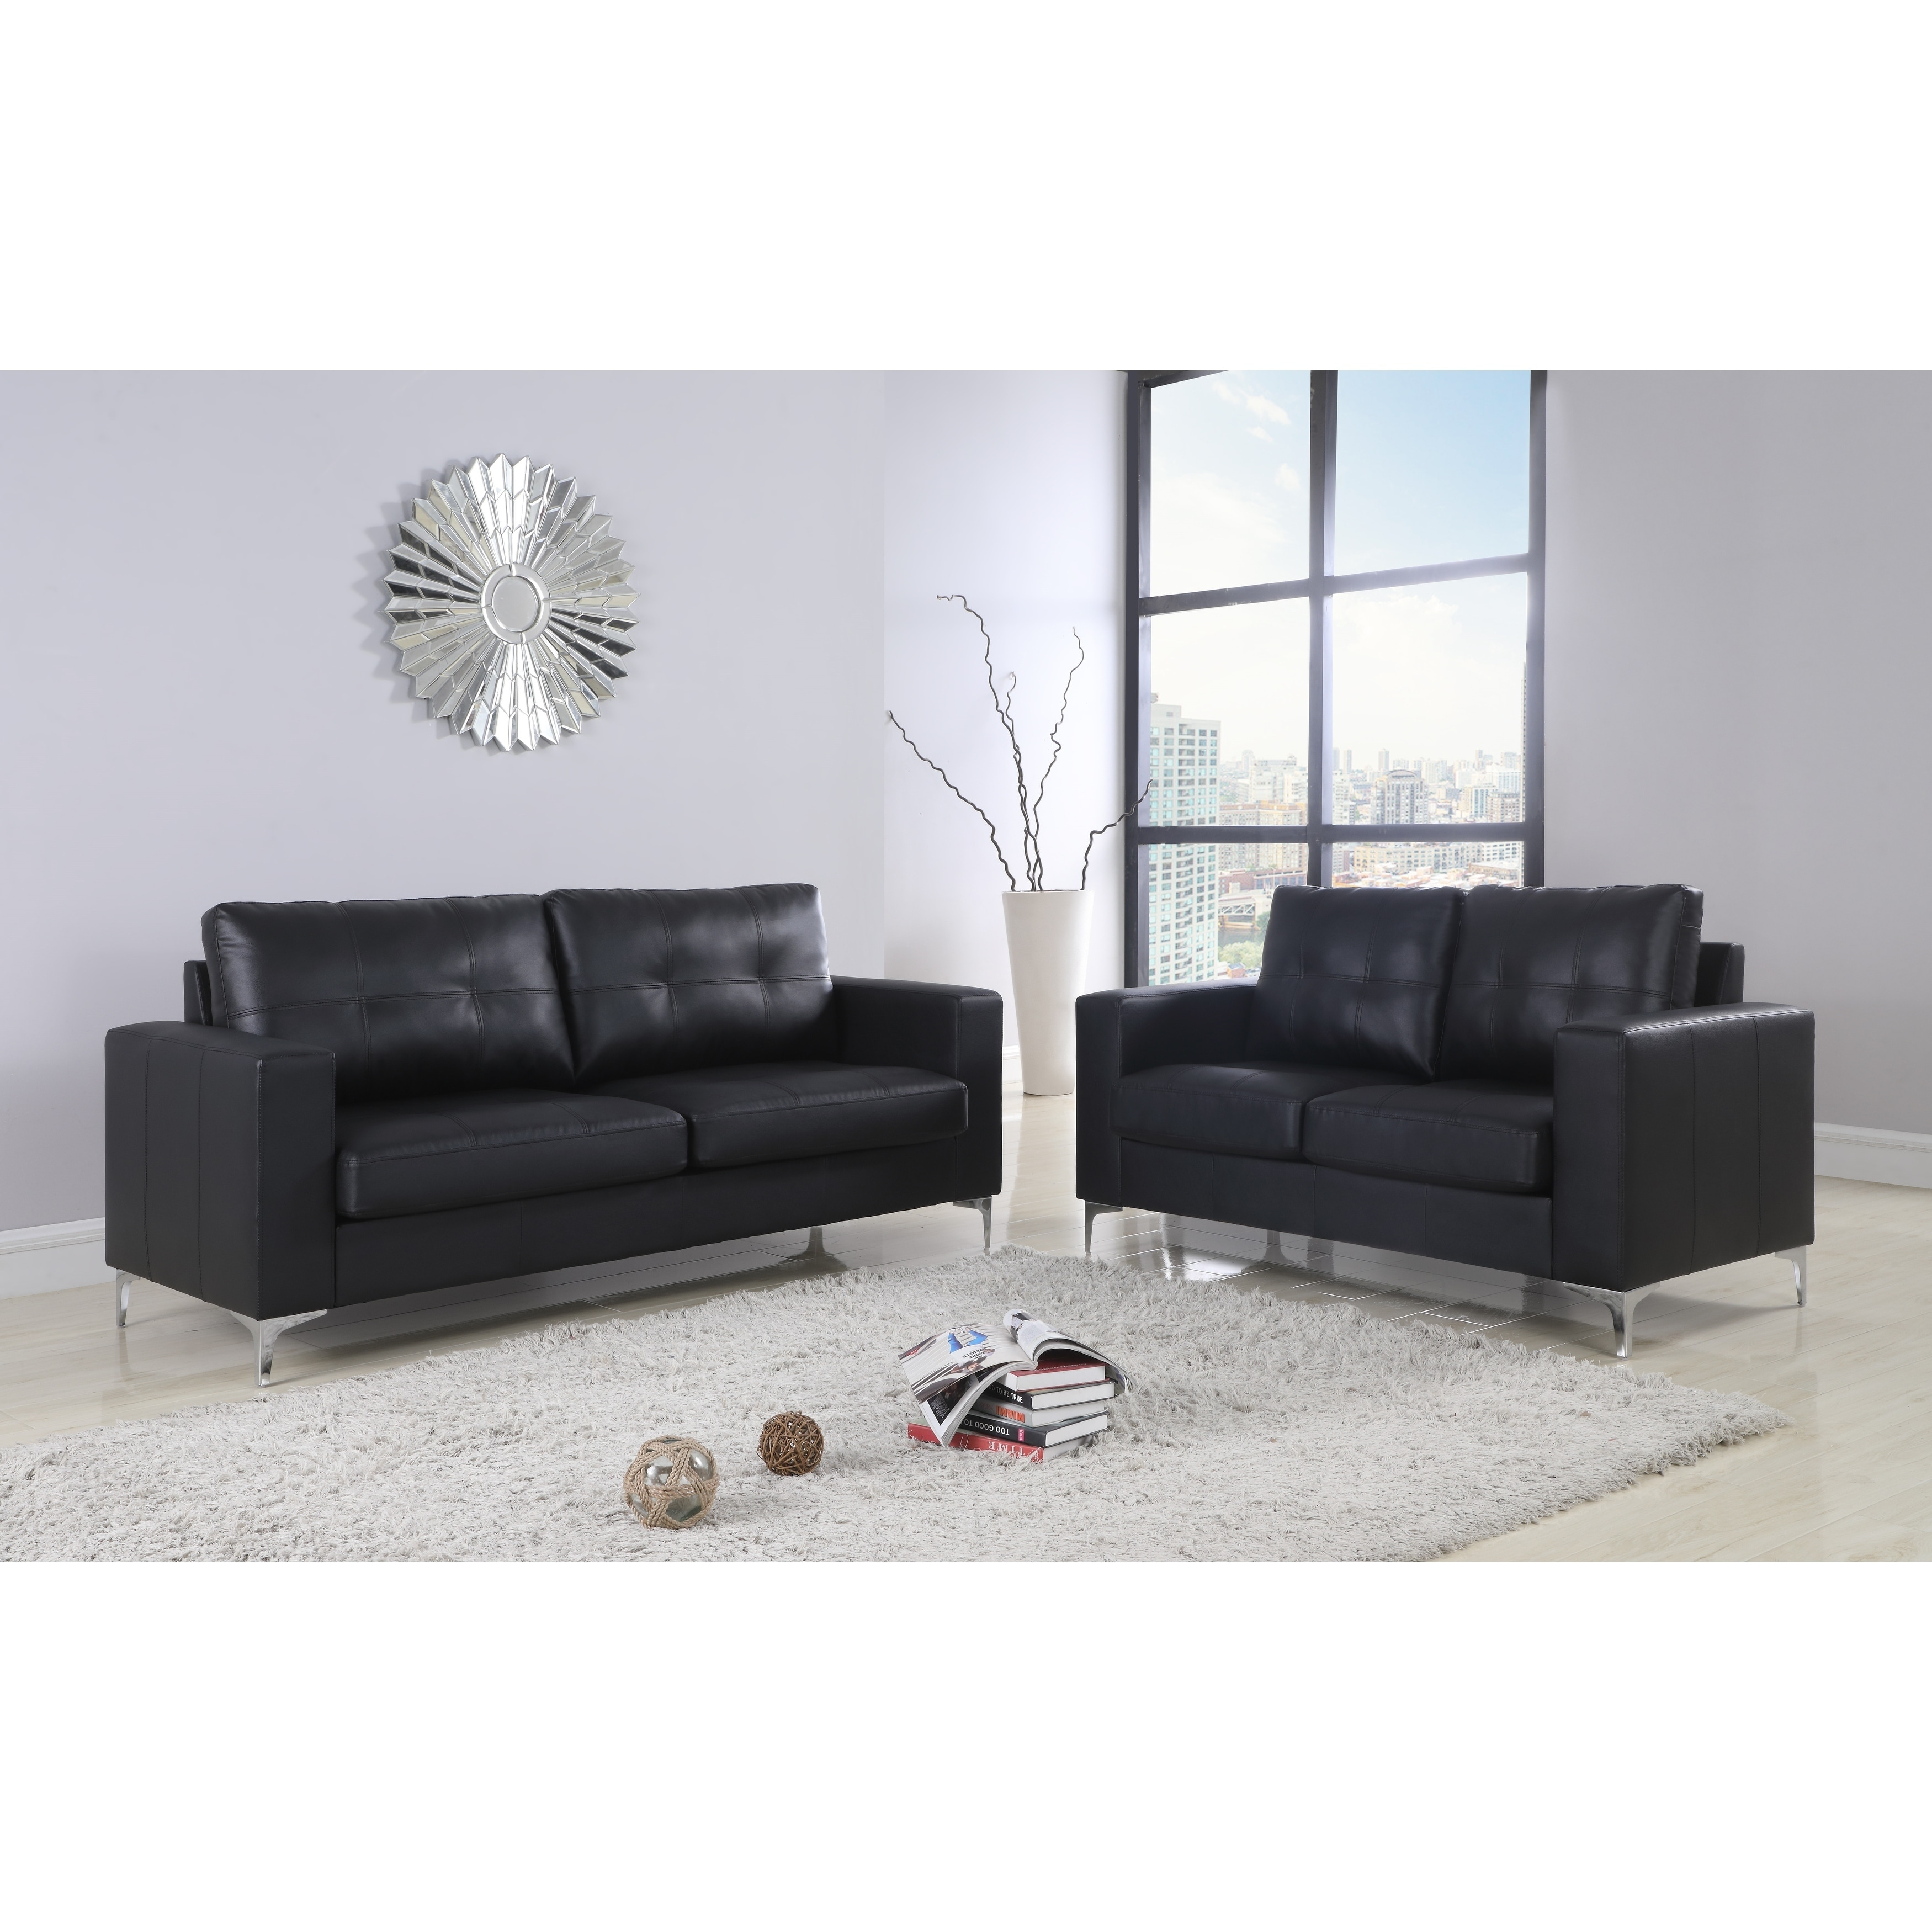 Leather Sofa Loveseat With Chrome Leg